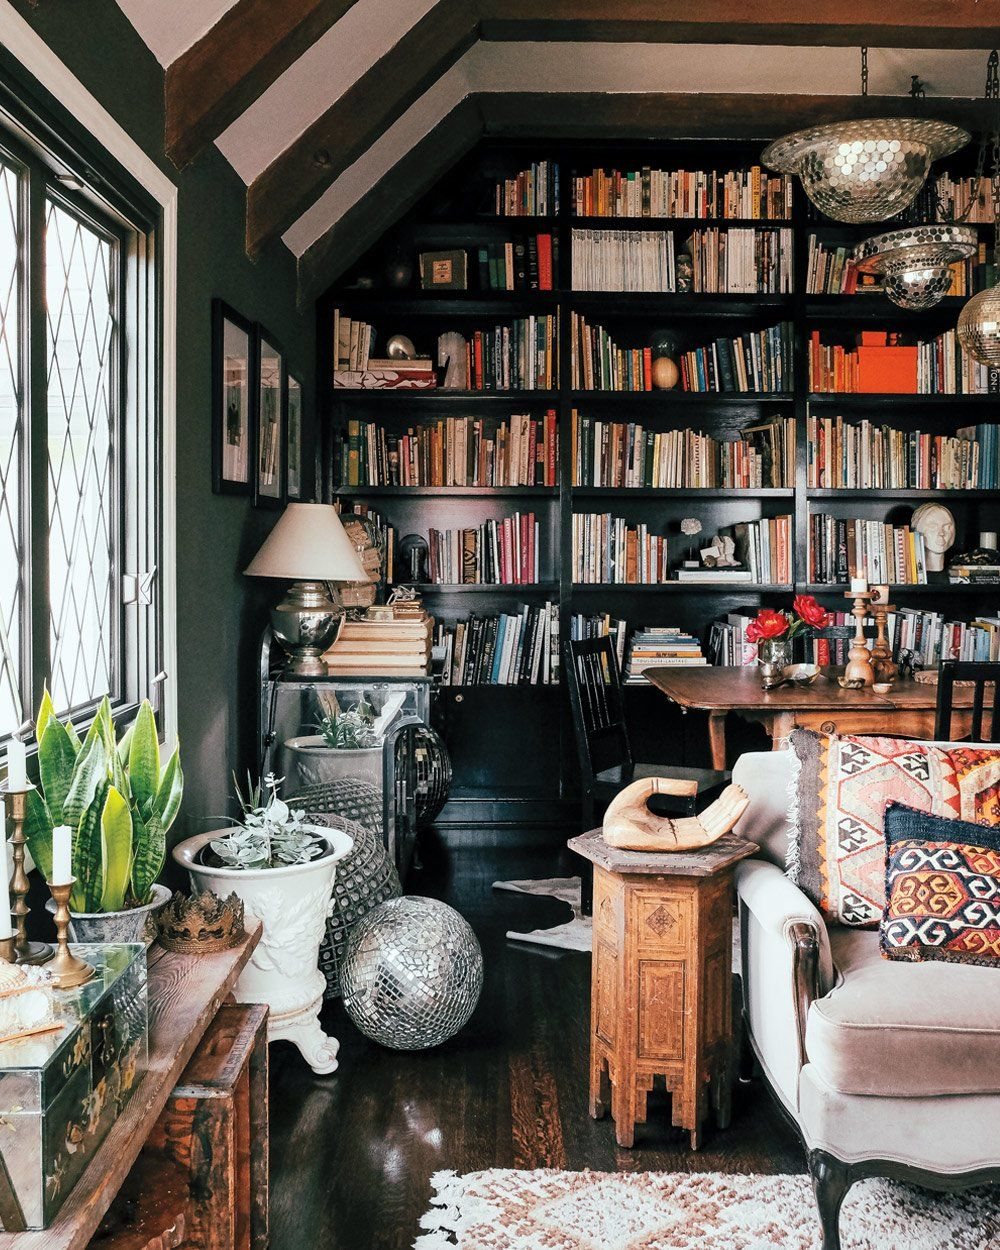 Library Room Ideas For Small Spaces: Maximalist Decor, Home